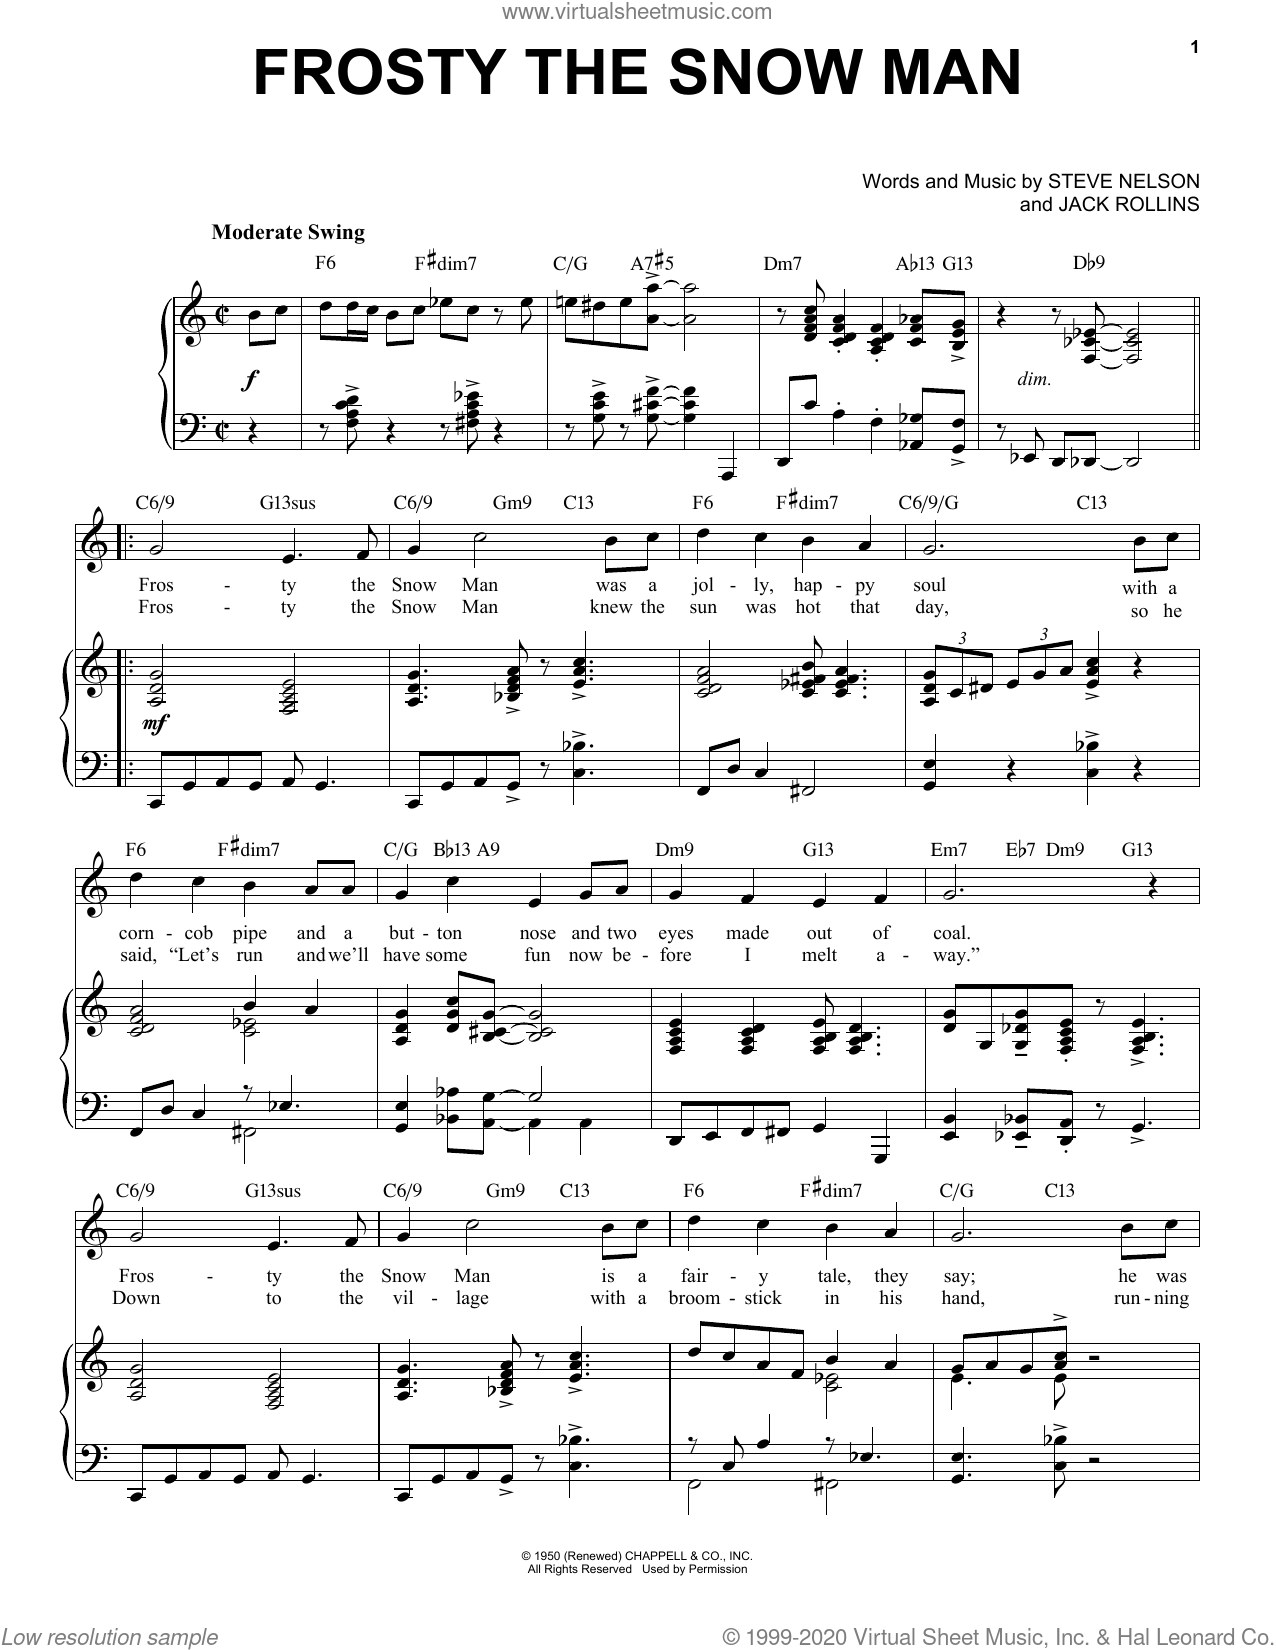 Frosty The Snow Man [Jazz Version] (arr. Brent Edstrom) sheet music for voice and piano (High Voice) by Steve Nelson, Brent Edstrom and Jack Rollins, intermediate skill level